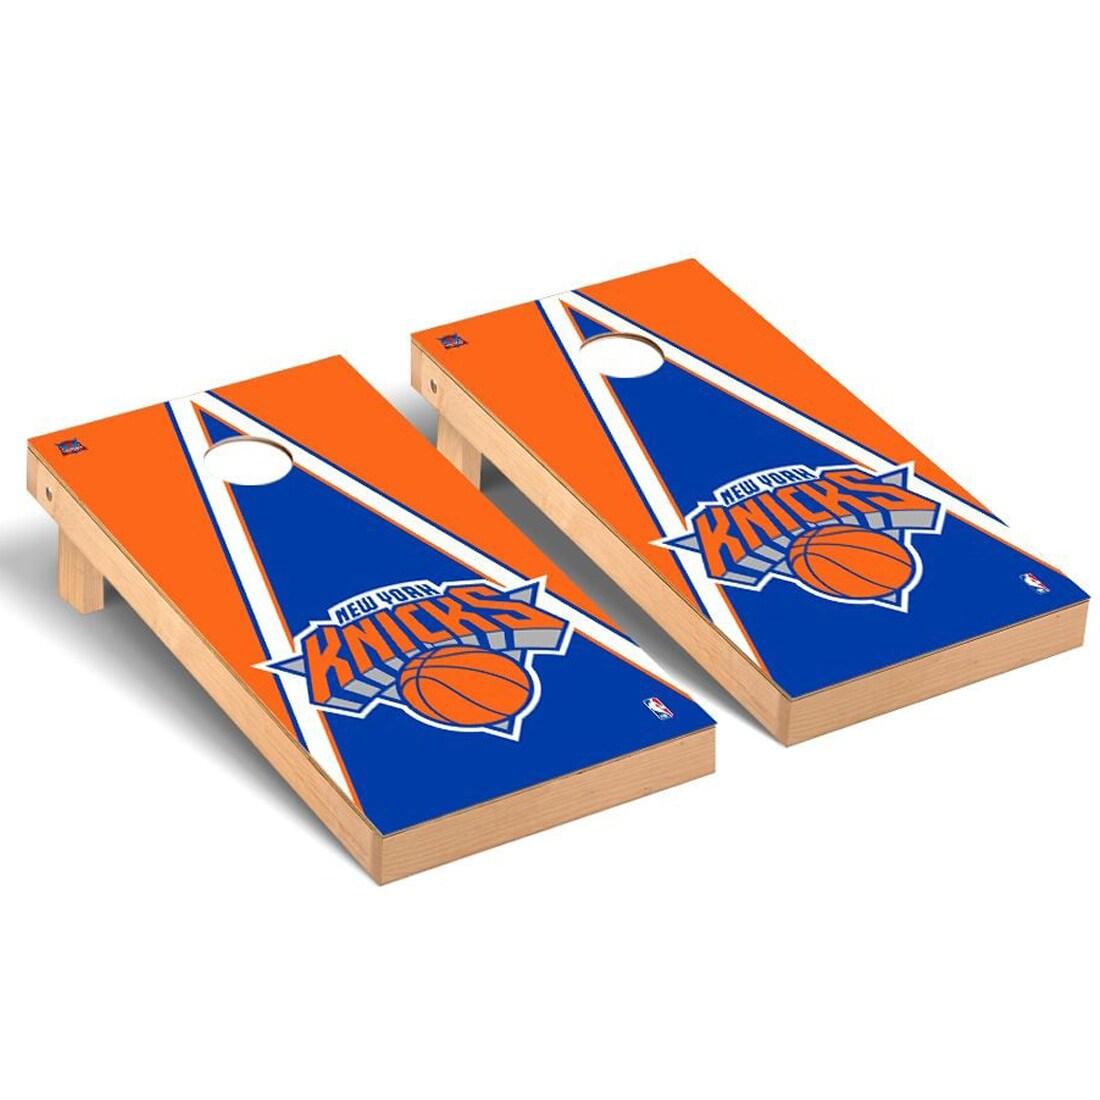 New York Knicks 2' x 4' Triangle Museum Cornhole Board Tailgate Toss Set